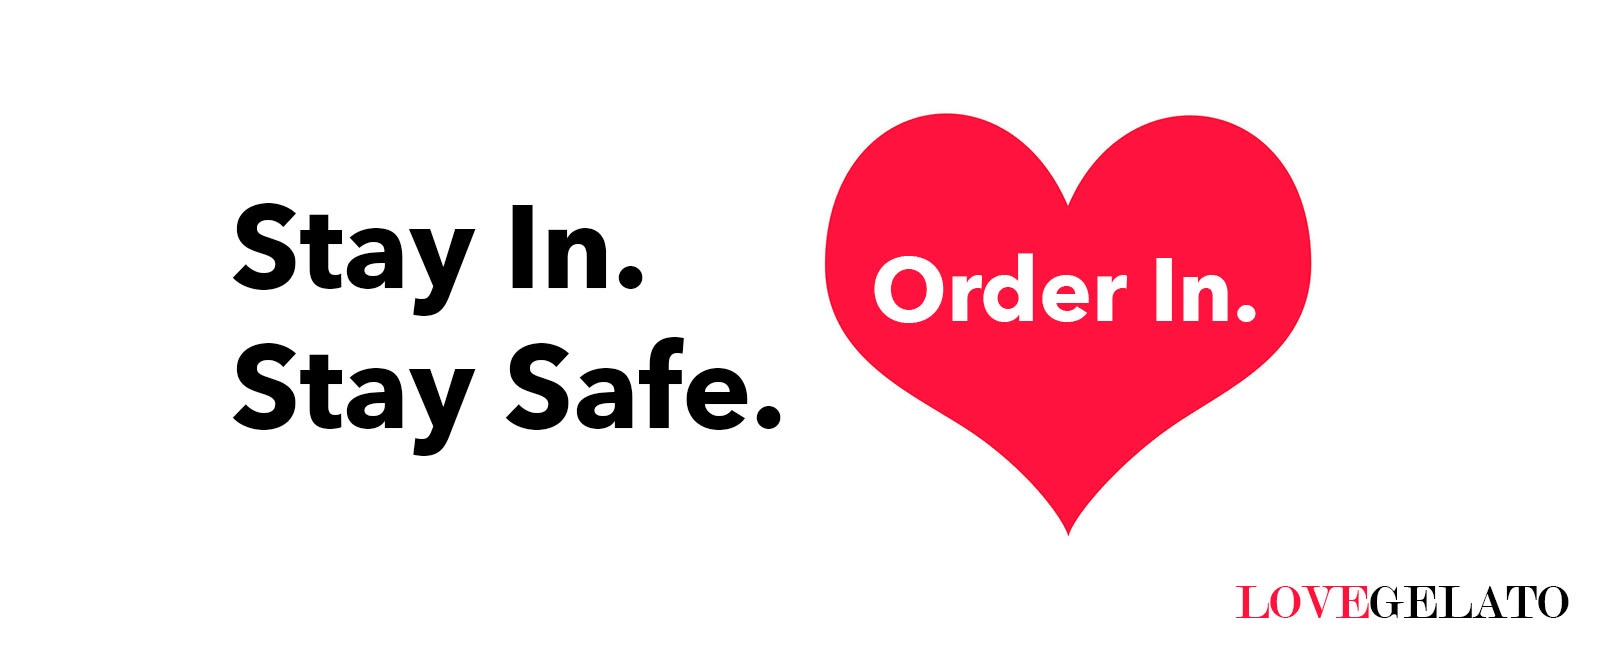 Stay In. Stay Safe. Order In.